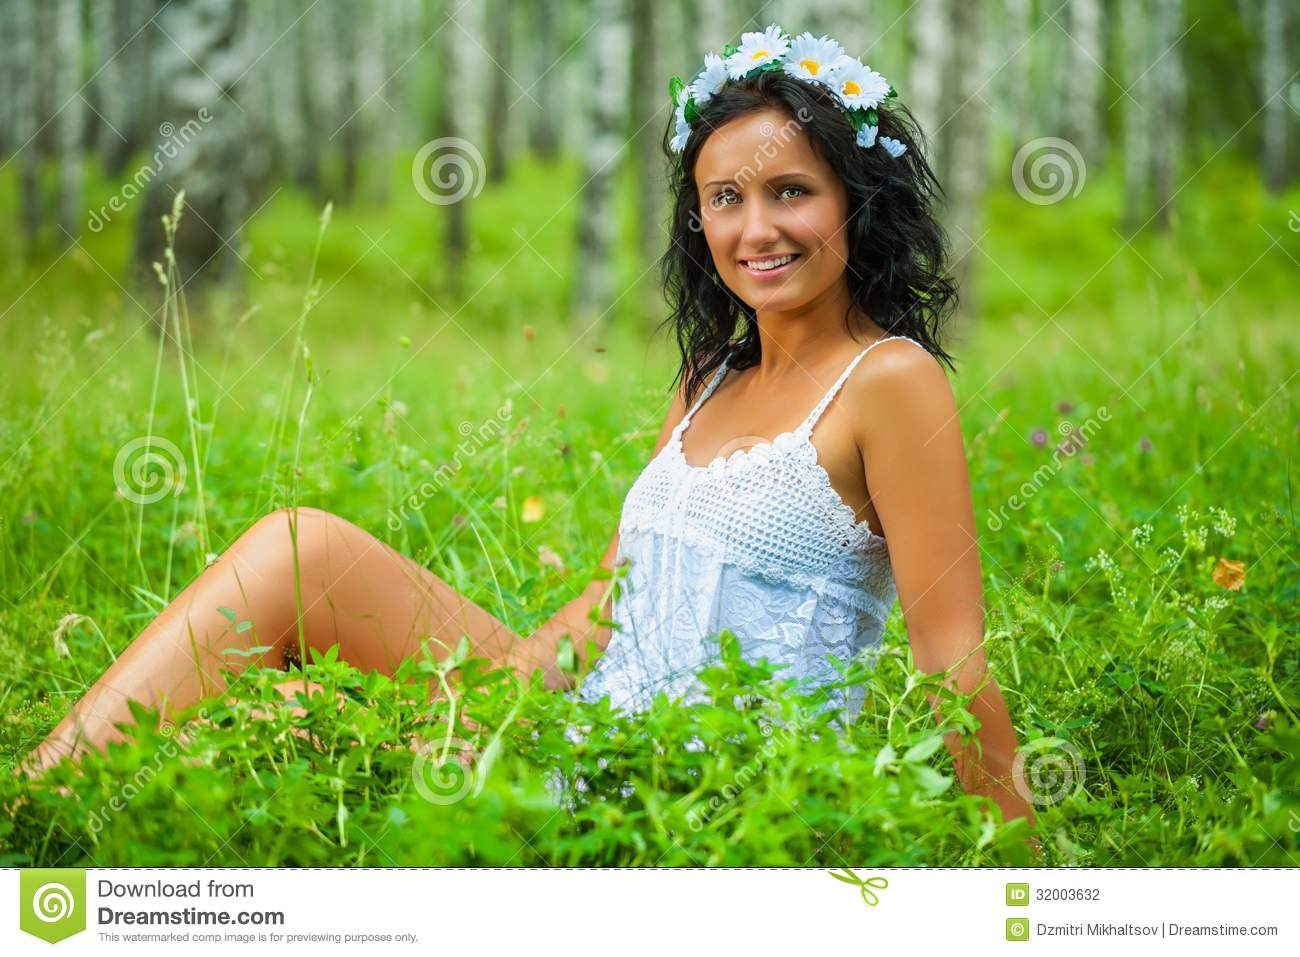 Girl resting in grass stock image. Image of lying, grass